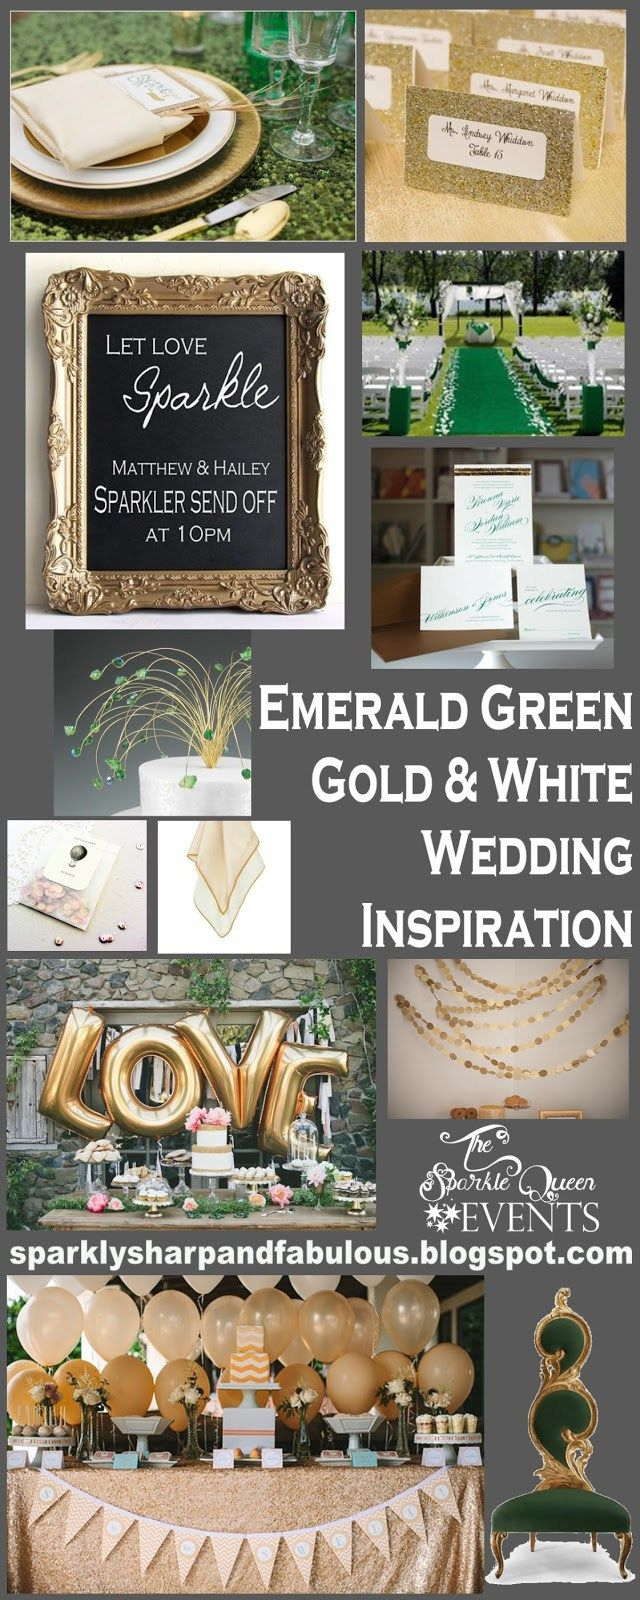 Can you believe it is Wednesday already? This week I am sharing with you this lovely wedding inspiration board. The colors I choose to go with were lovely emerald greens, rich gold, and crisp white. While in some instances, these colors create a very regal effect, they can also be a little TOO formal and … … Continue reading →